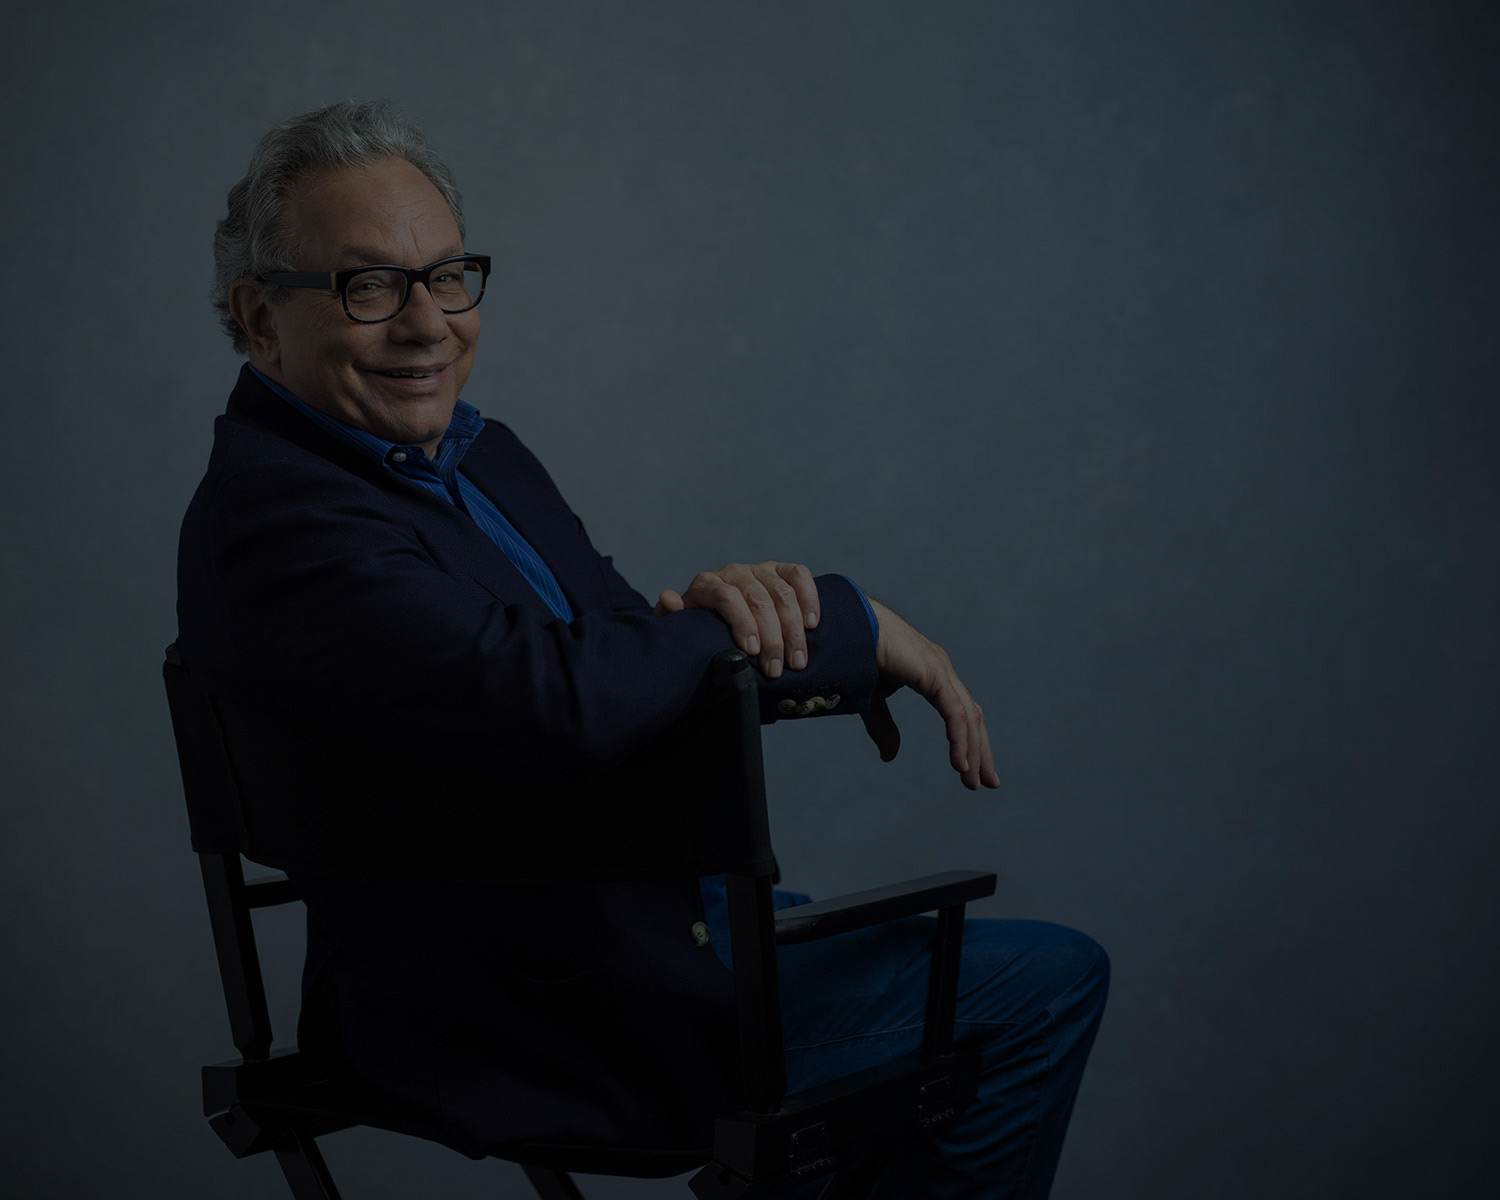 <b>Lewis Black</b> Powering Lewis Black's video and webcasts, & a custom mobile web app to allow audience members to submit ideas for 'rants' to his iPad during live shows using our FanConnect platform.